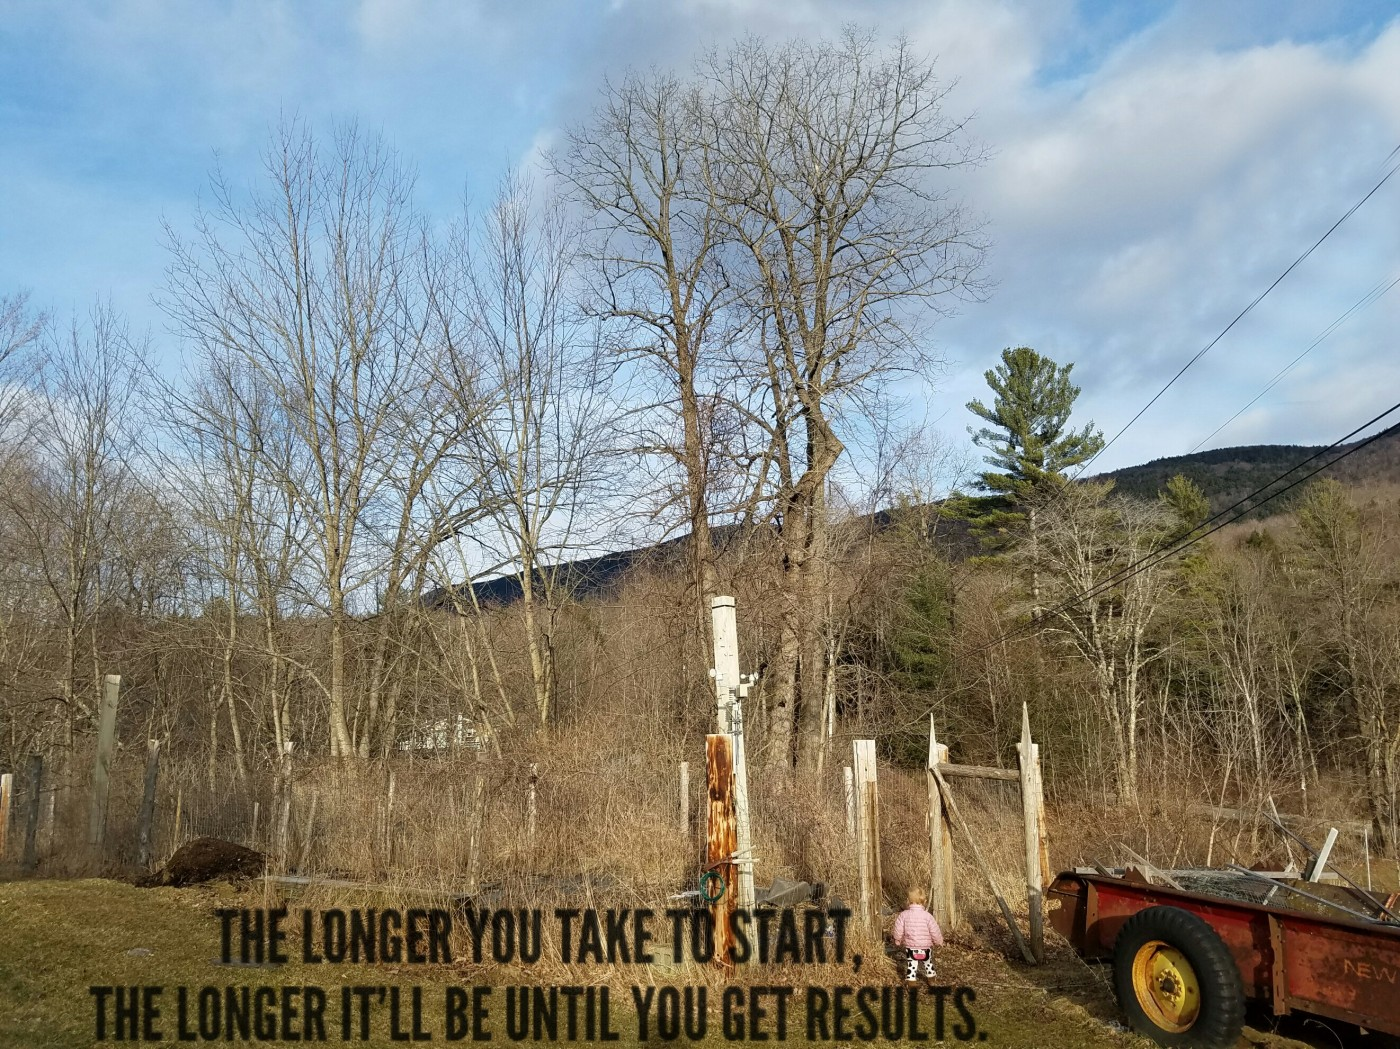 Better Beauty Vermont The longer you take to start, the longer it'll be until you get results